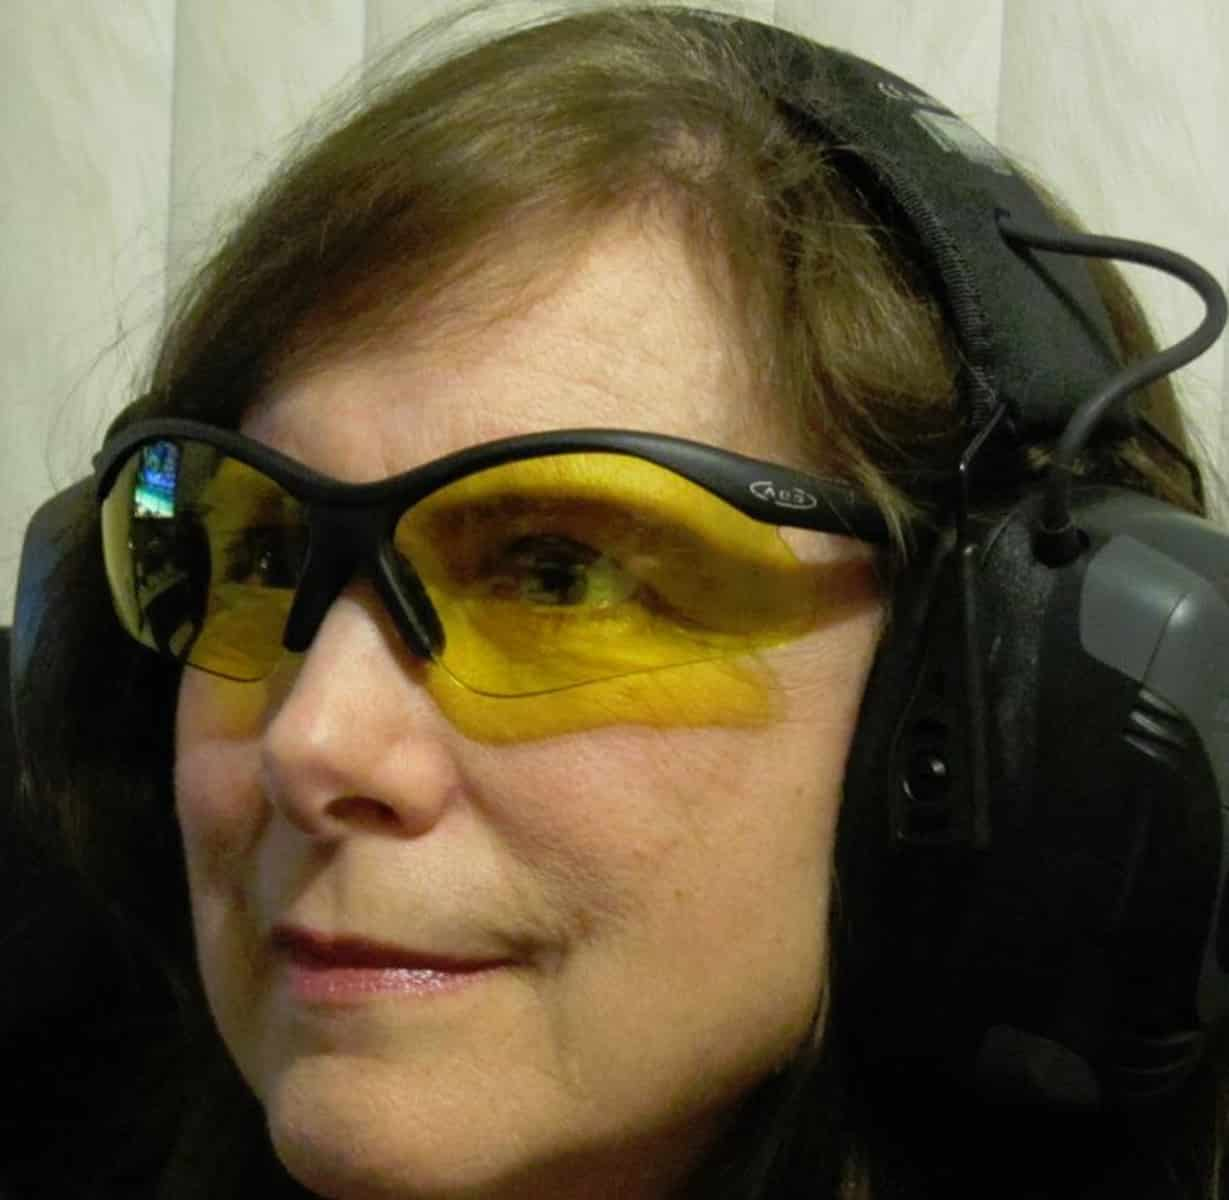 d2a9ee893e 9 Considerations for Selecting Your Shooting Glasses - USA Carry